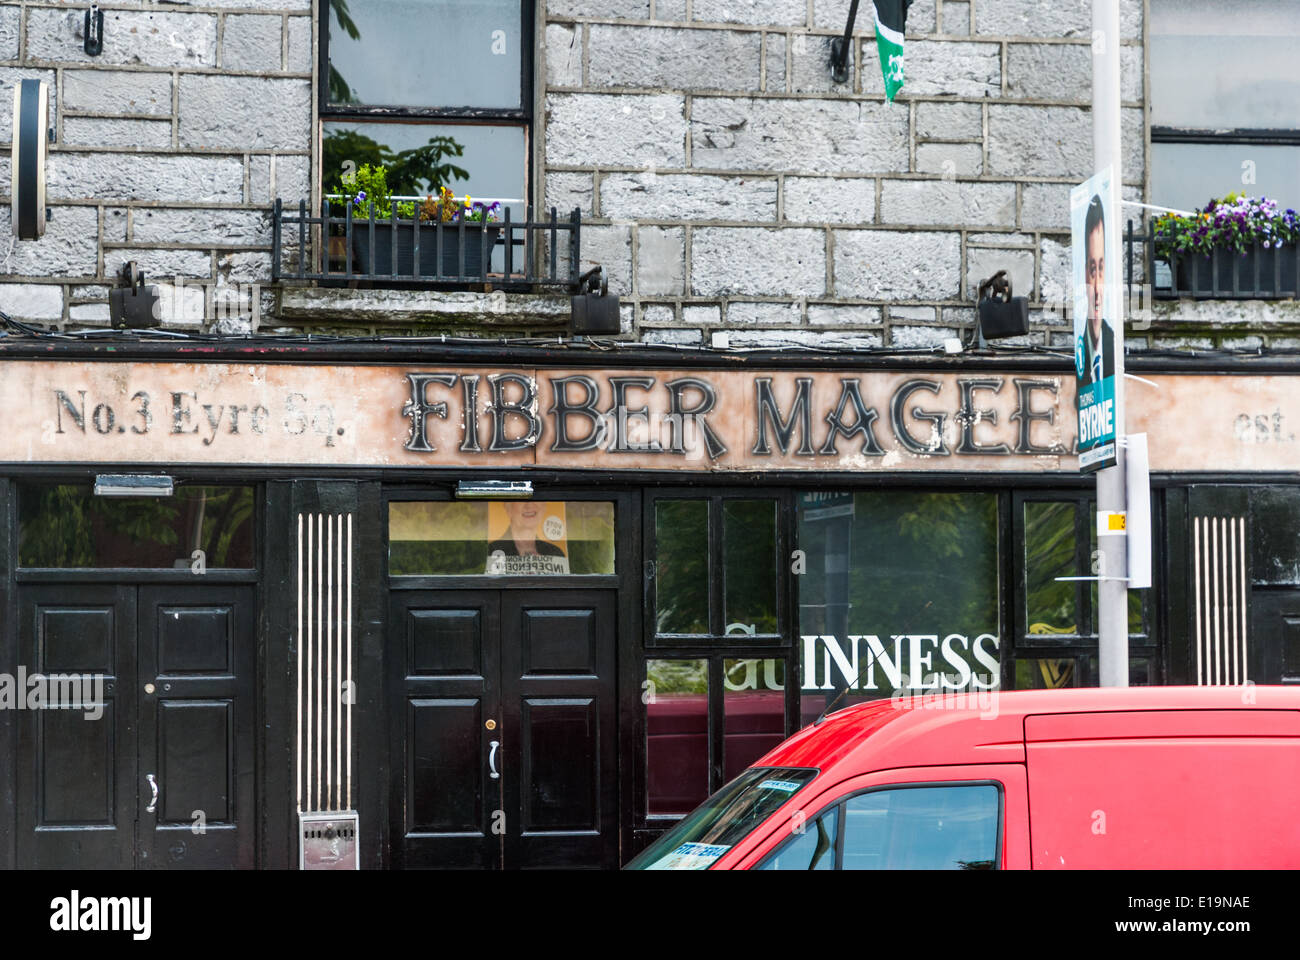 Fibber Magee's - Stock Image